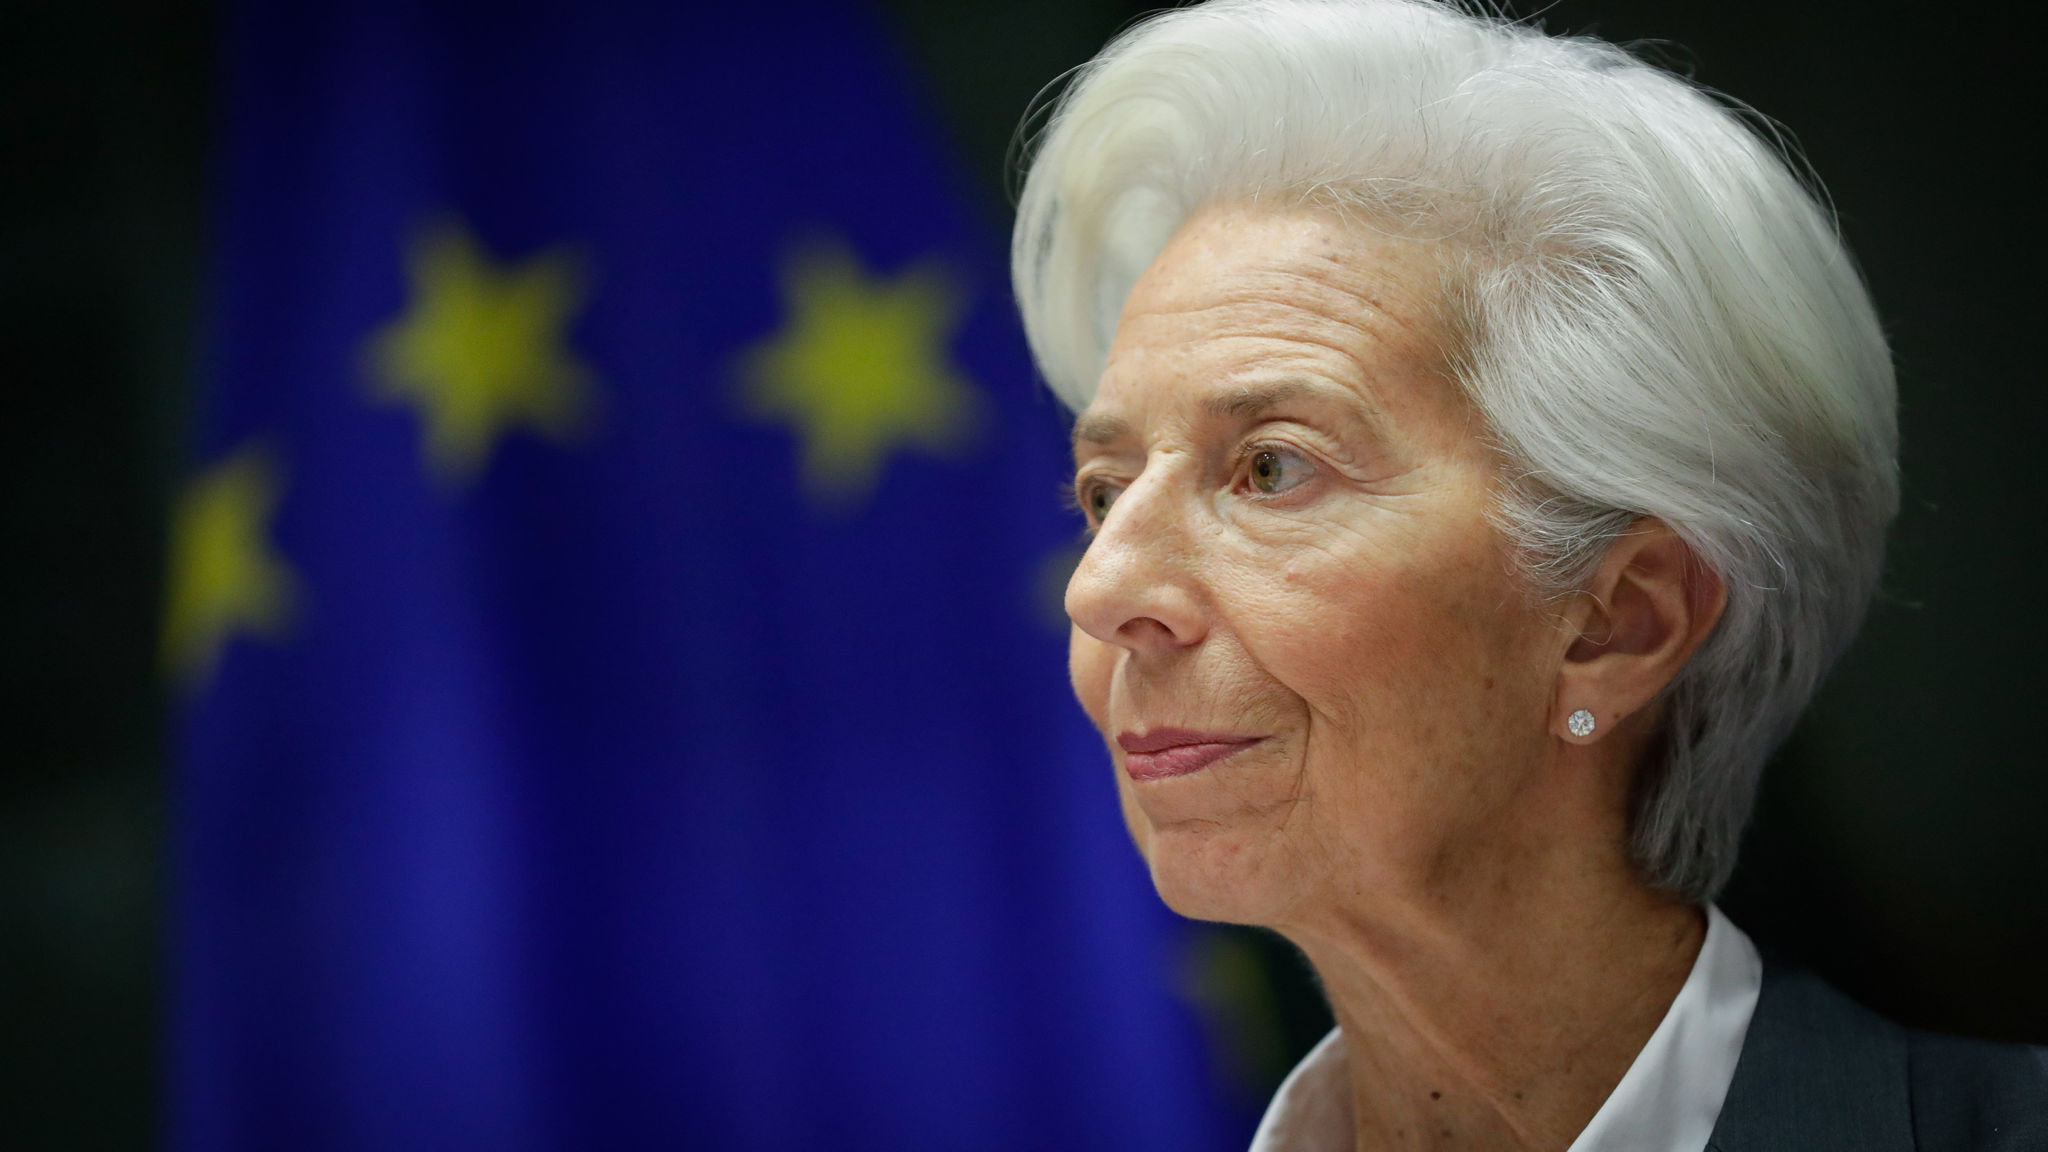 Christine Lagarde faces investor scrutiny in first ECB meeting | Financial  Times